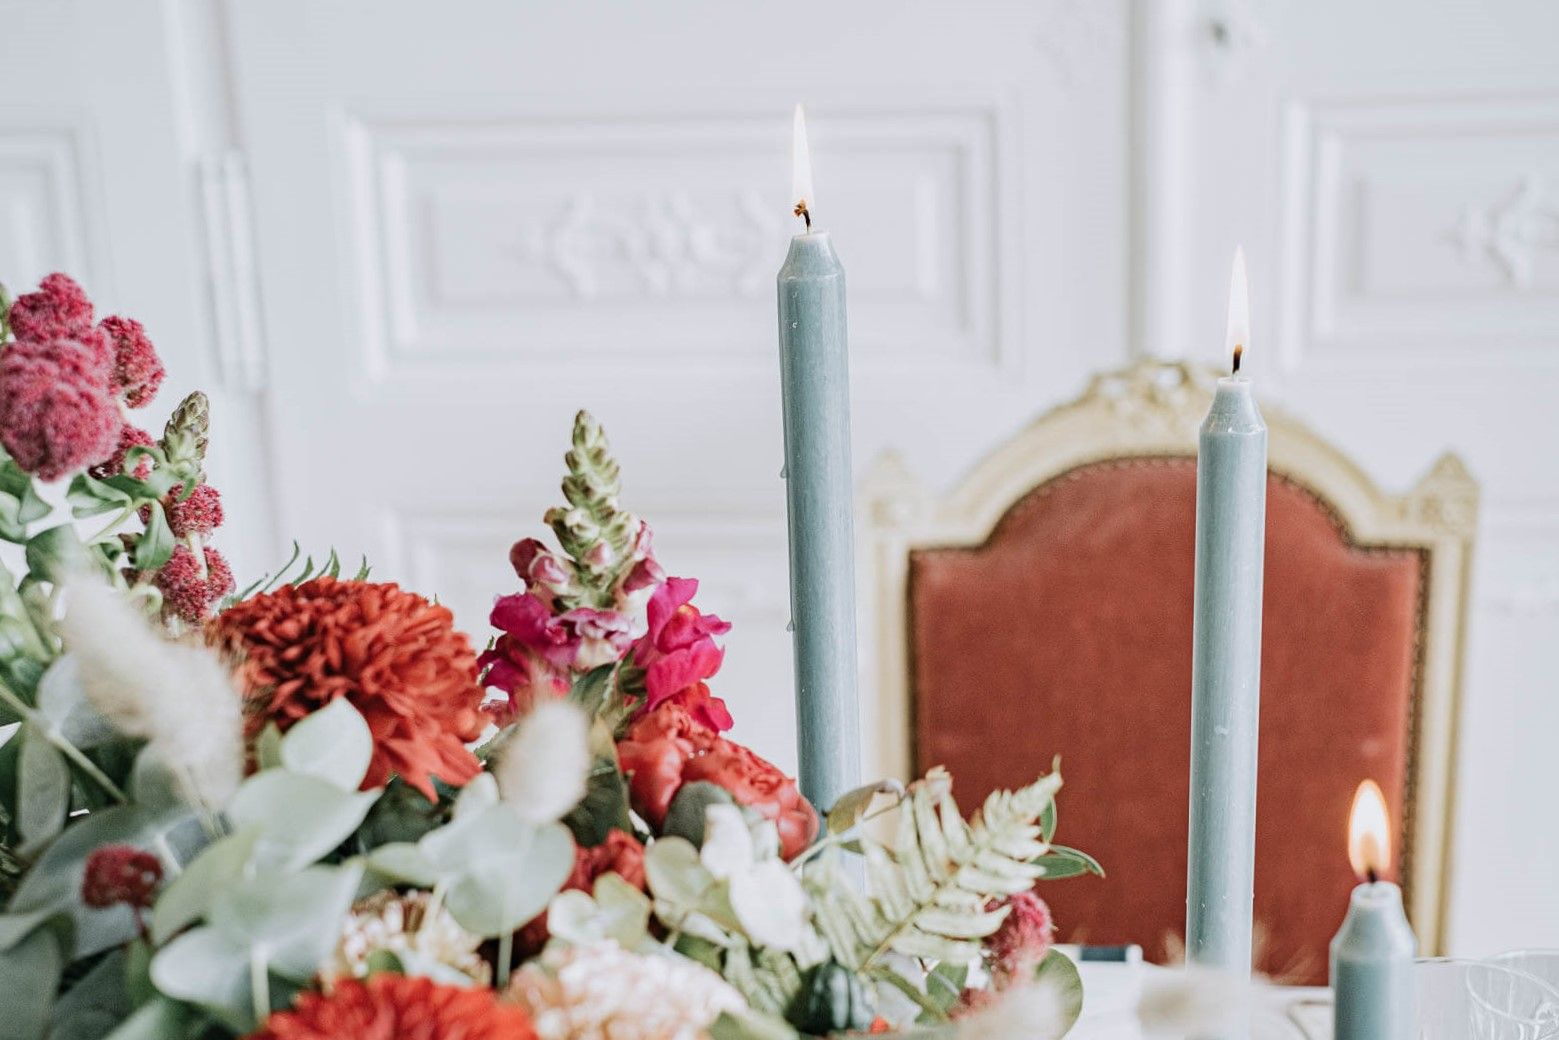 decoration-table-bougie-mariage